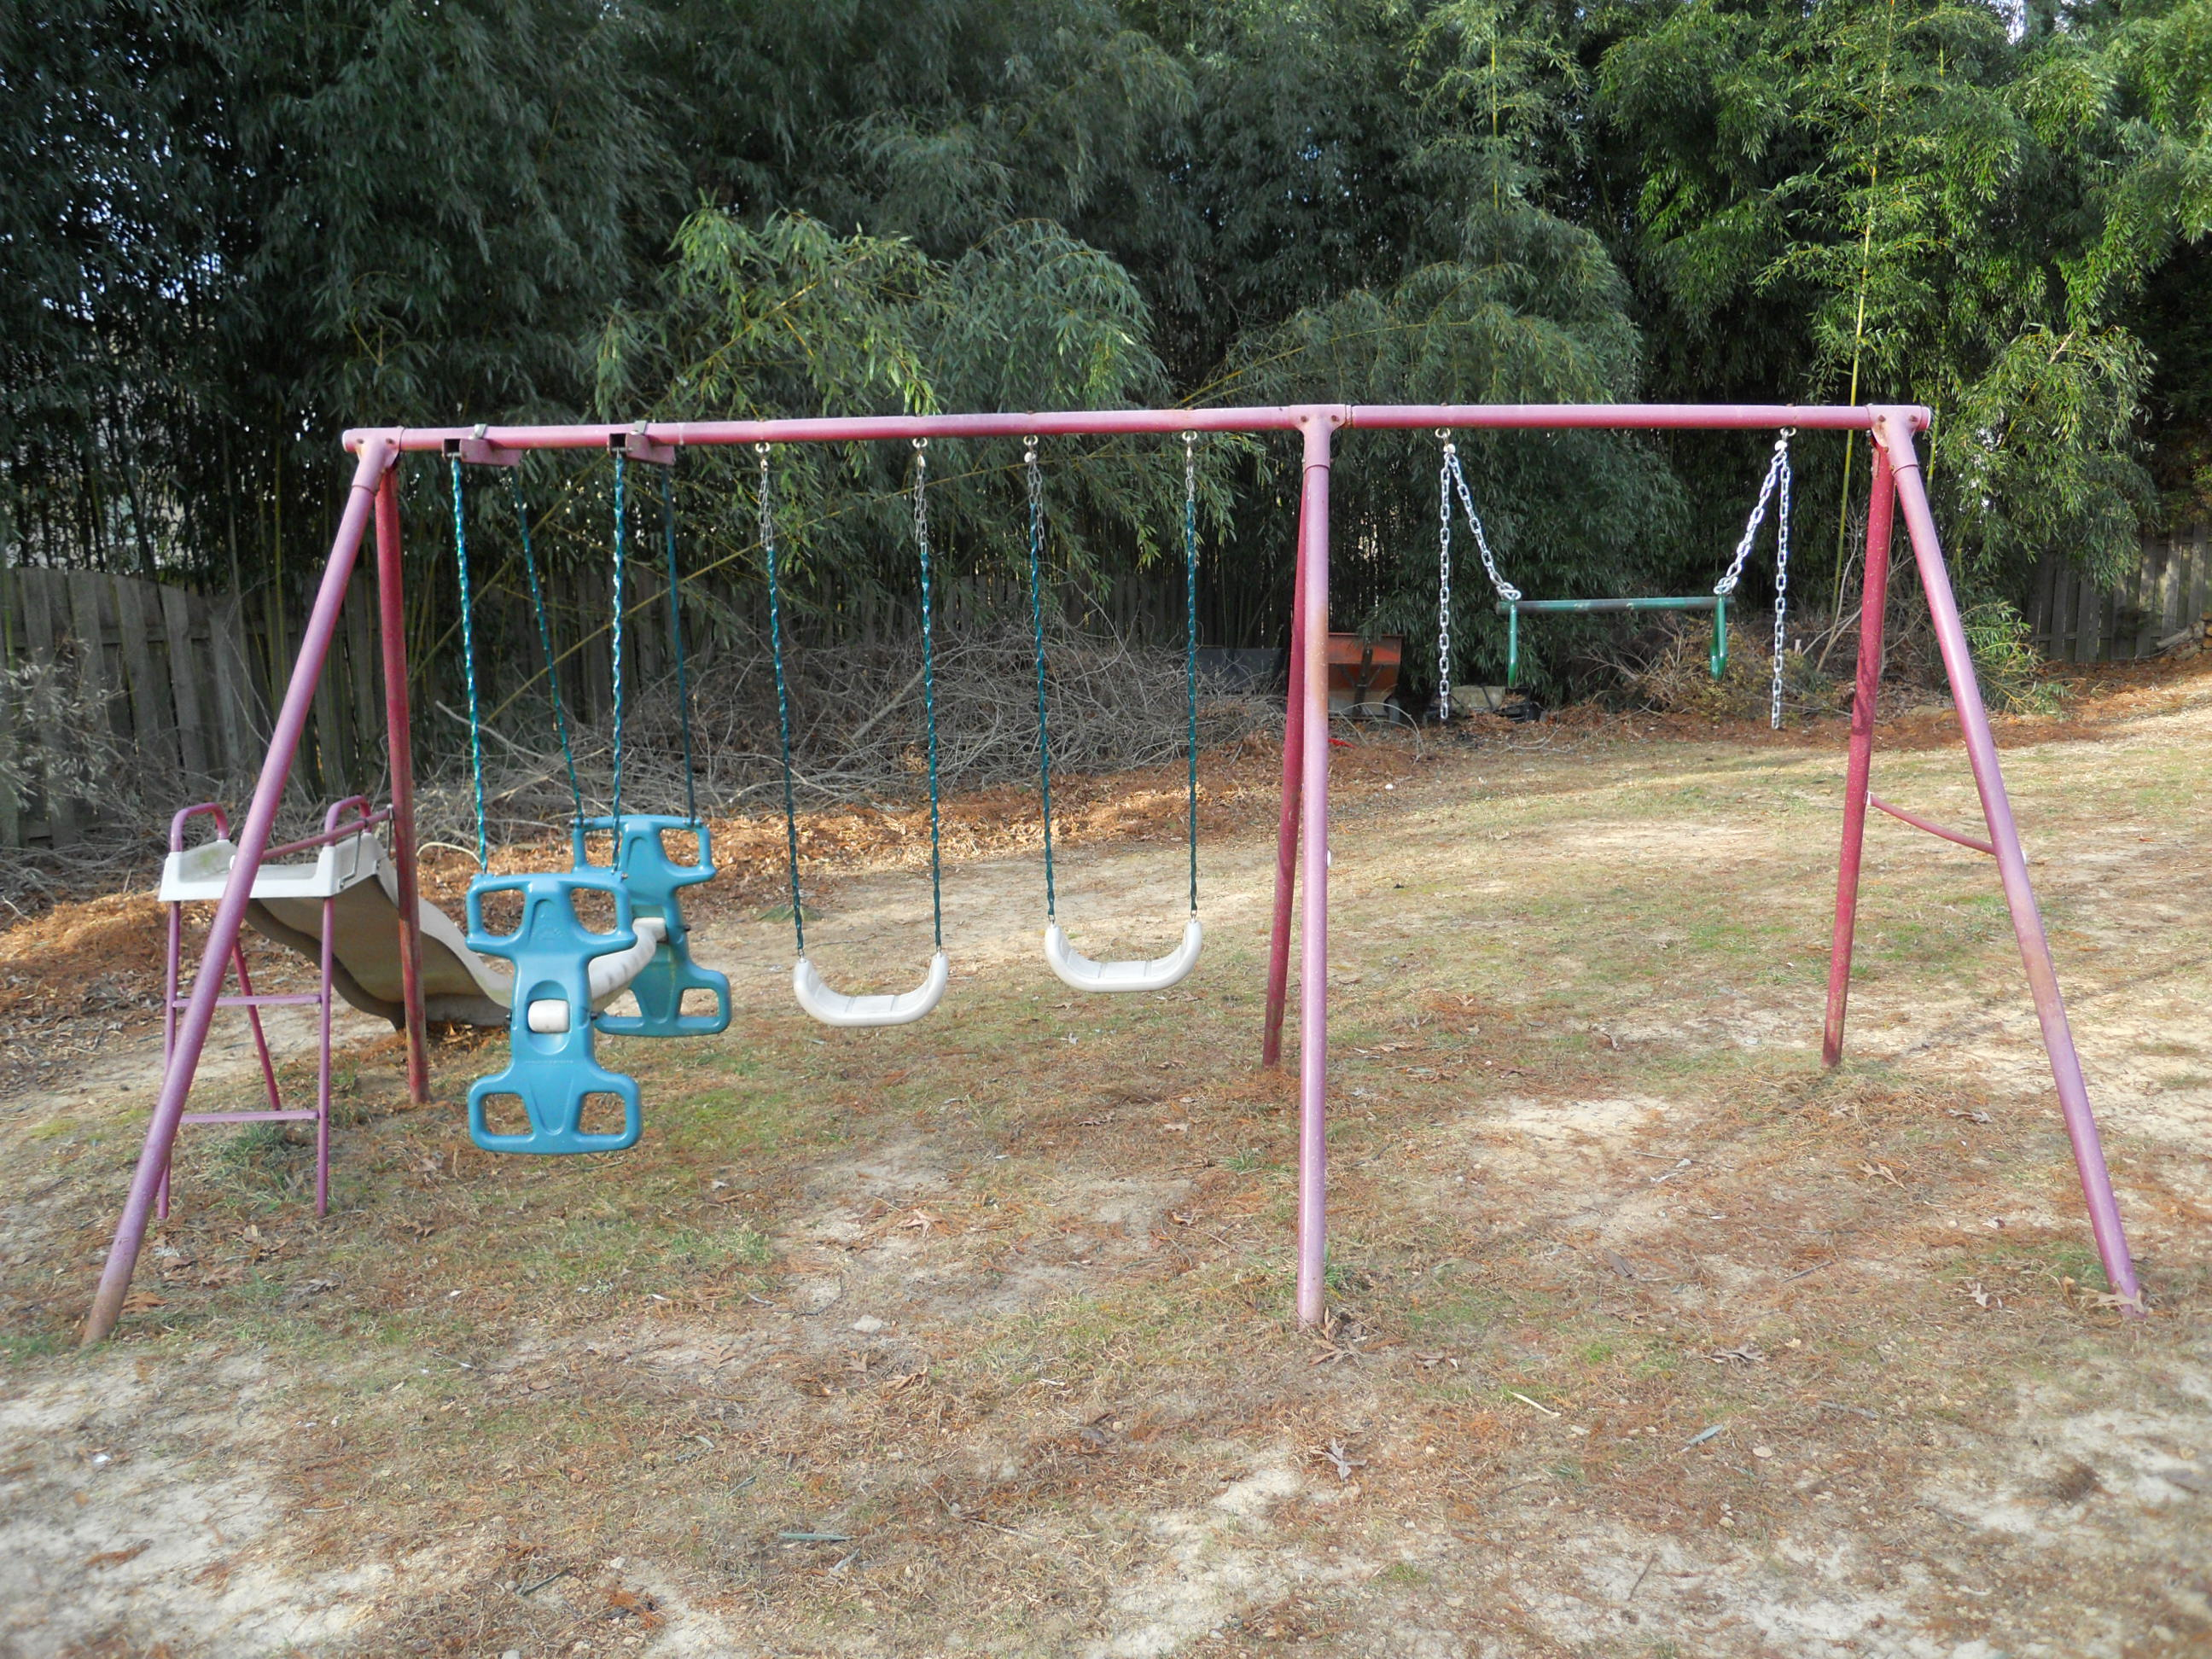 tp kids toys set swing lifestyle cuckooland metal garden brand double sets